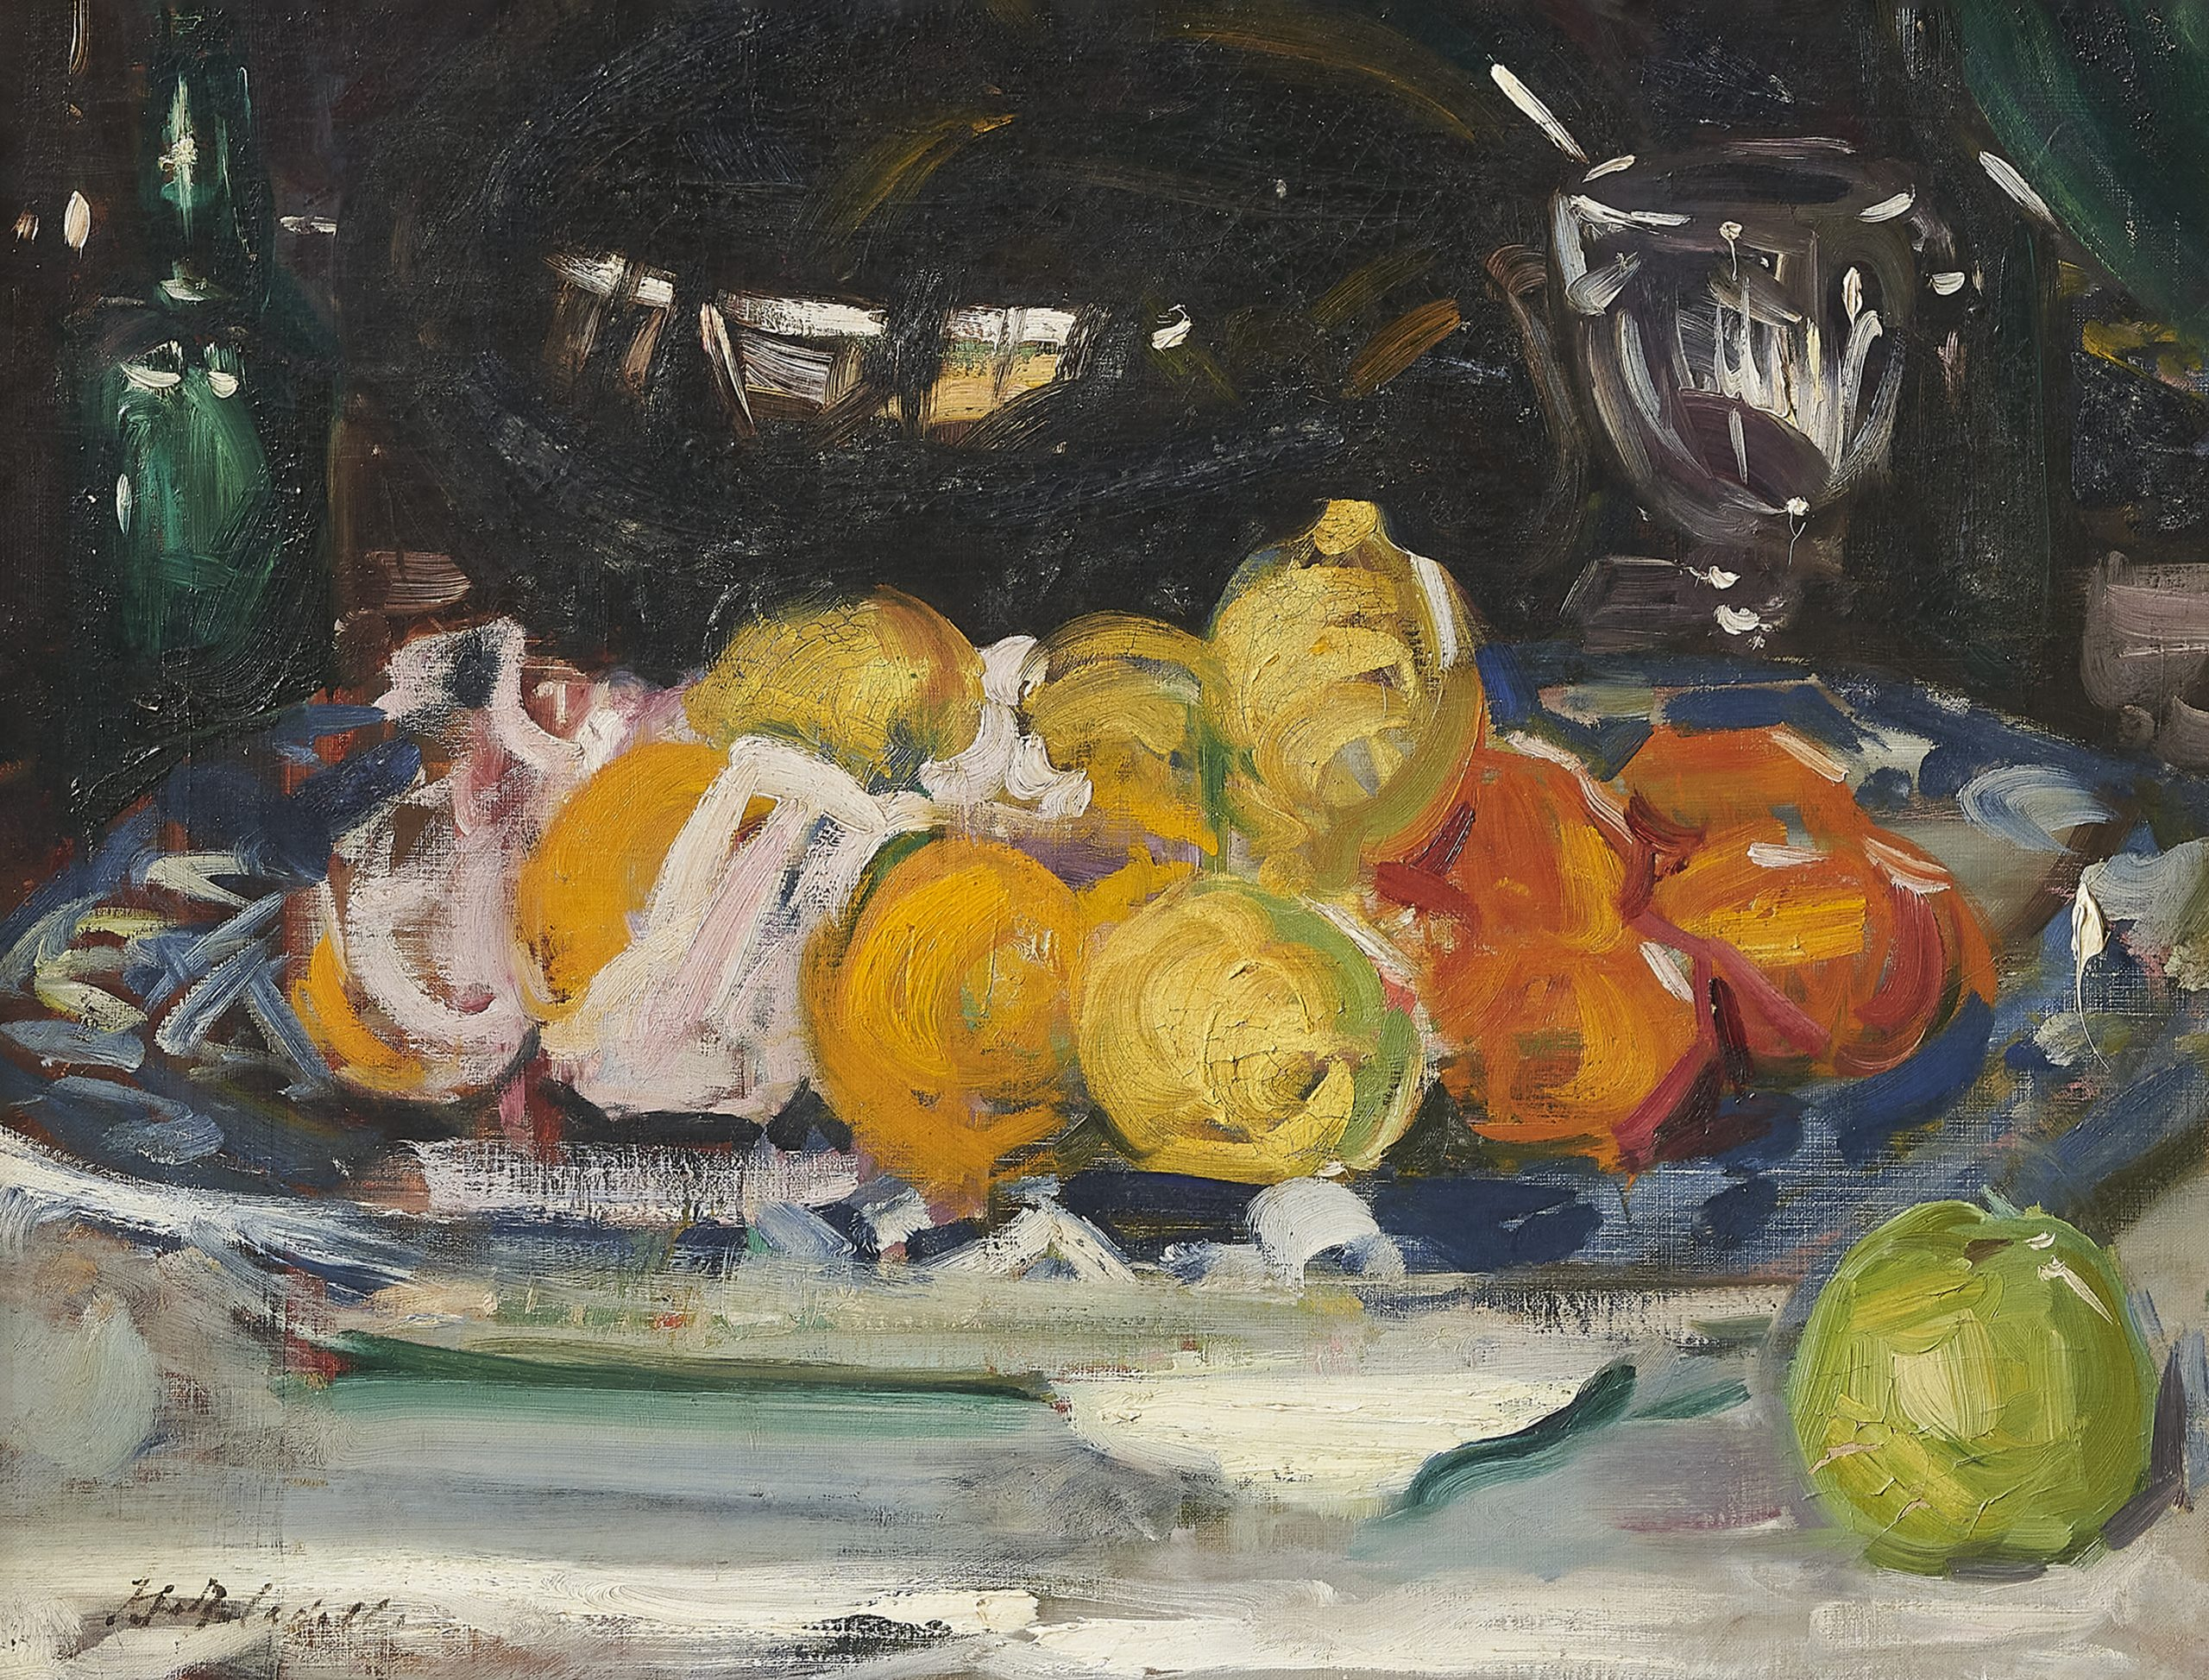 Cadell's Still Life with Oranges, Lemons and an Apple - Scottish News